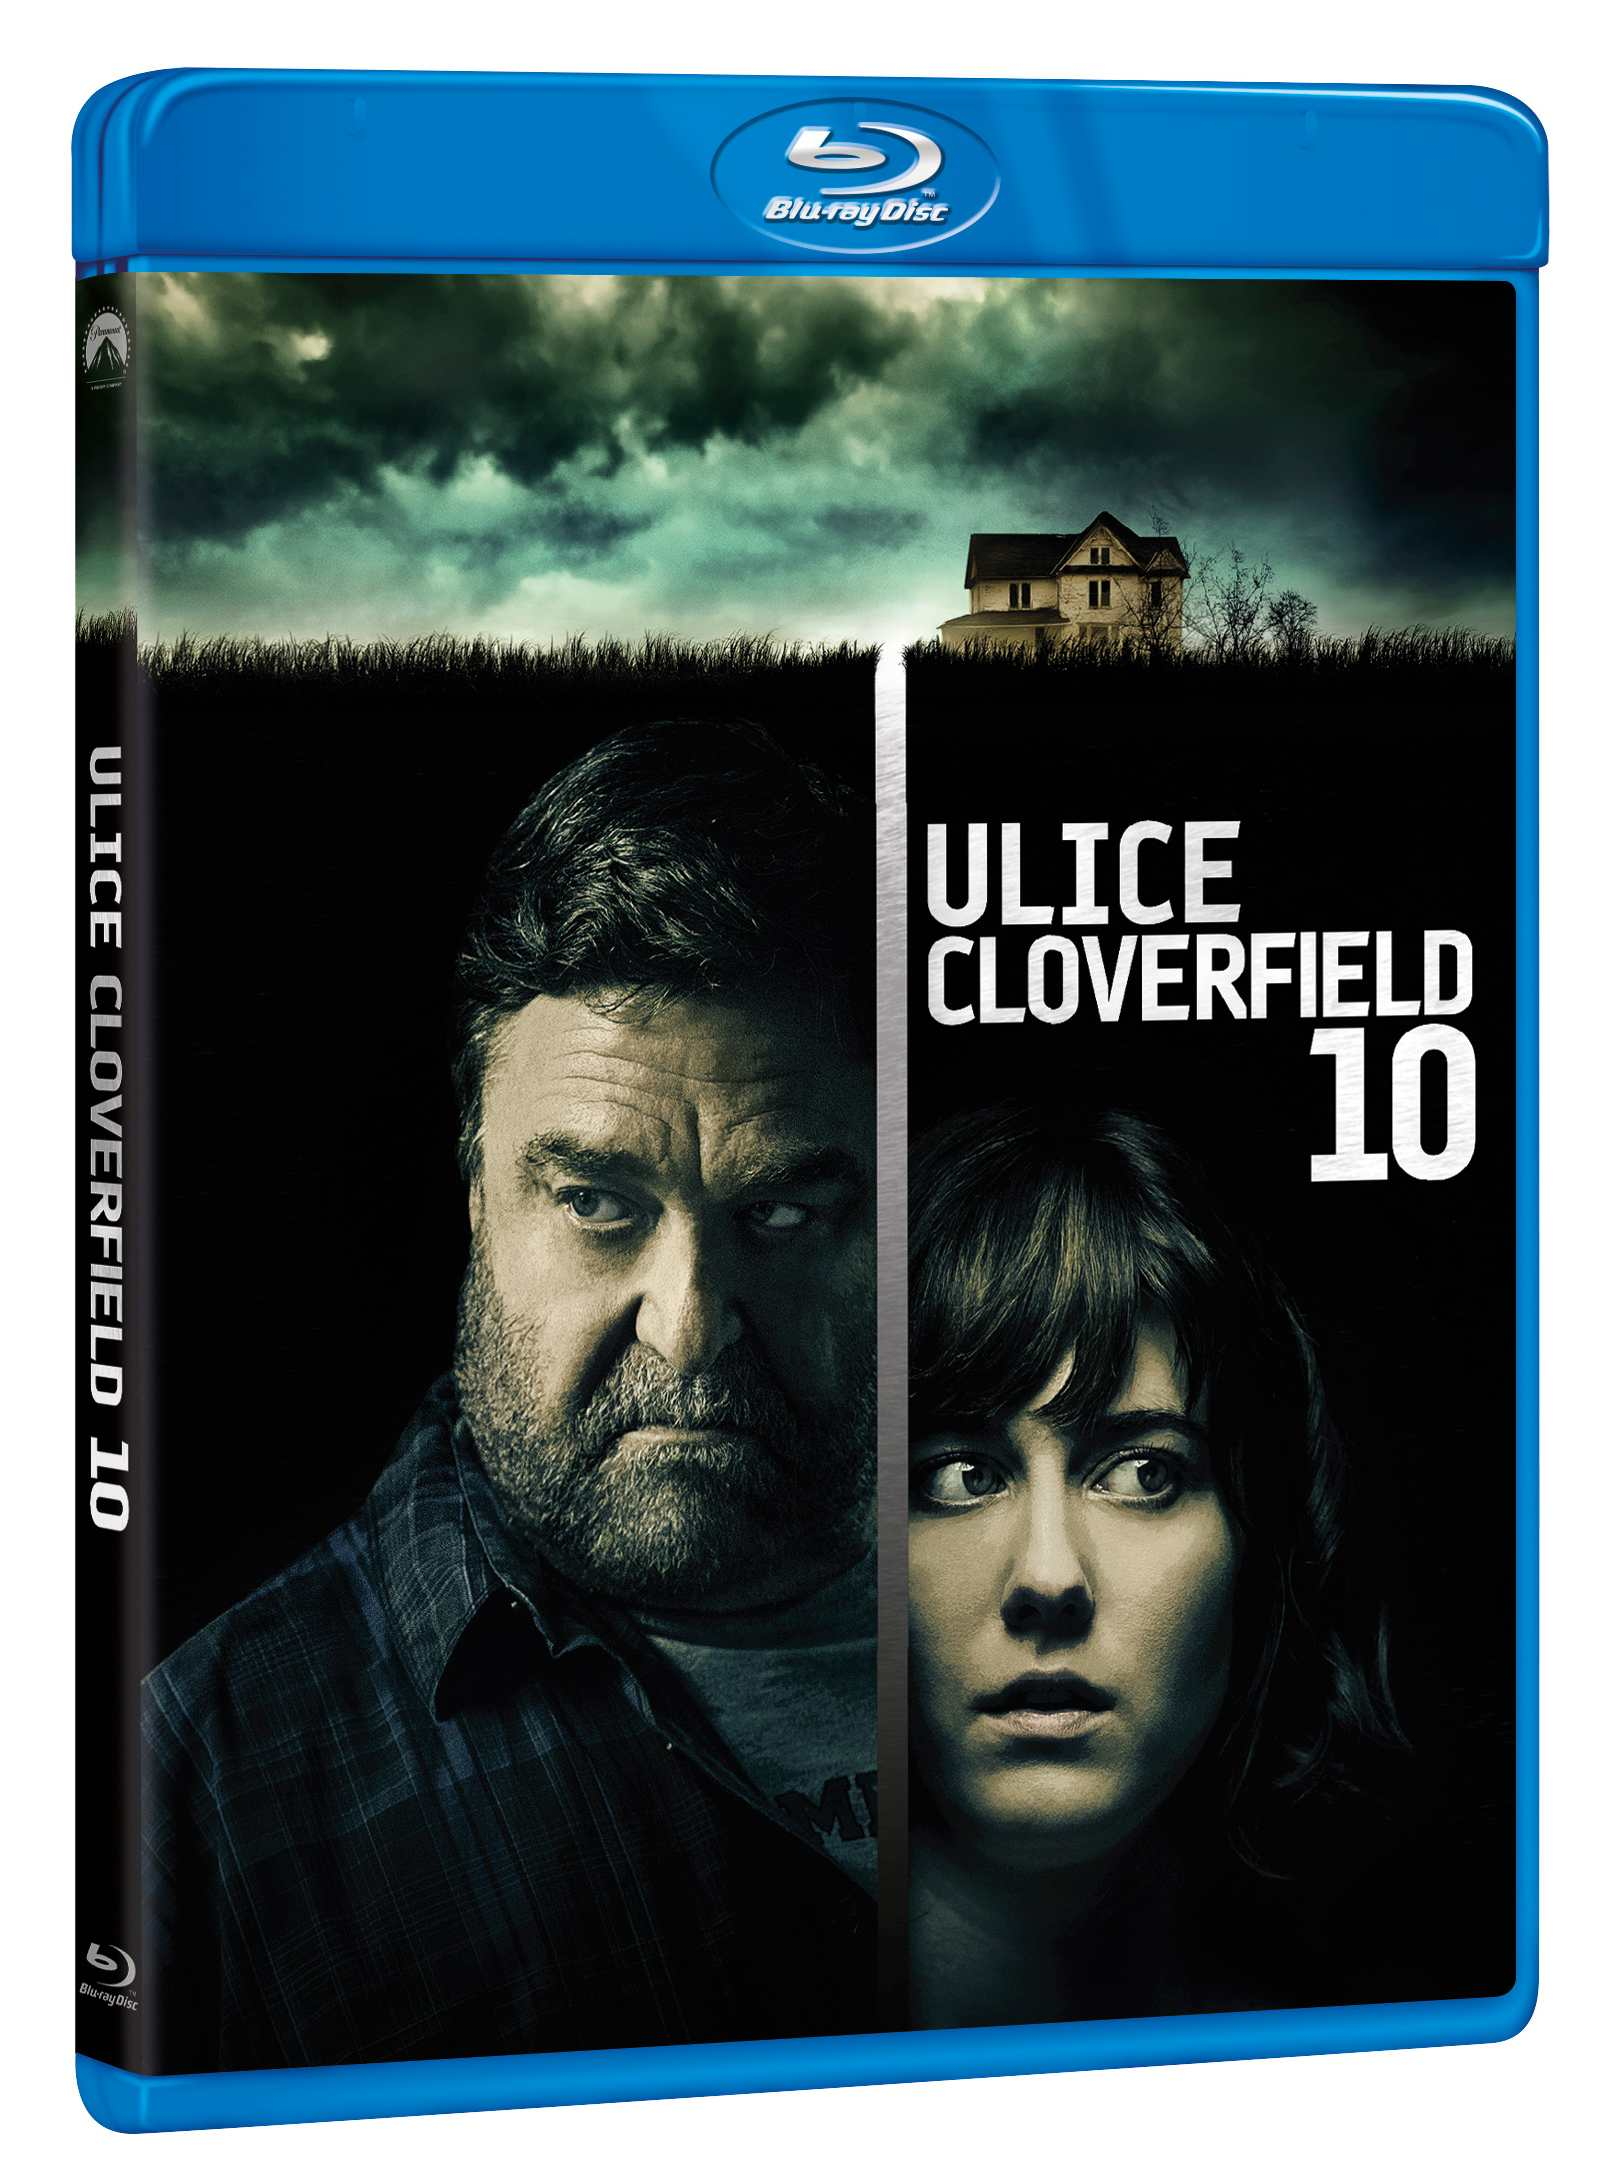 ULICE CLOVERFIELD 10 - Blu-ray